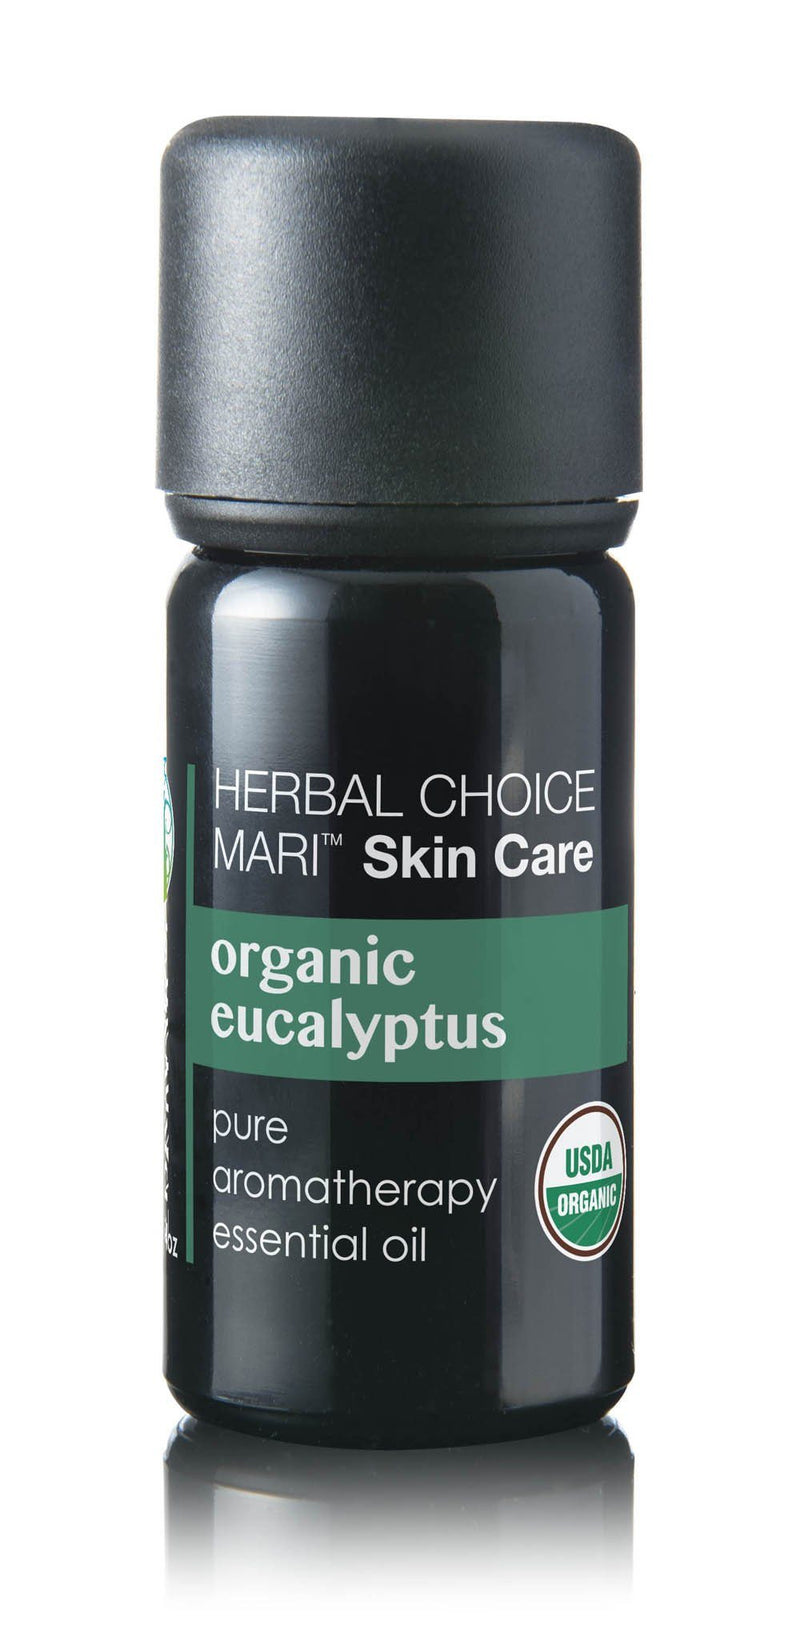 Herbal Choice Mari Organic Eucalyptus Essential Oil; 0.3floz Glass - Herbal Choice Mari Organic Eucalyptus Essential Oil; 0.3floz Glass - Herbal Choice Mari Organic Eucalyptus Essential Oil; 0.3floz Glass